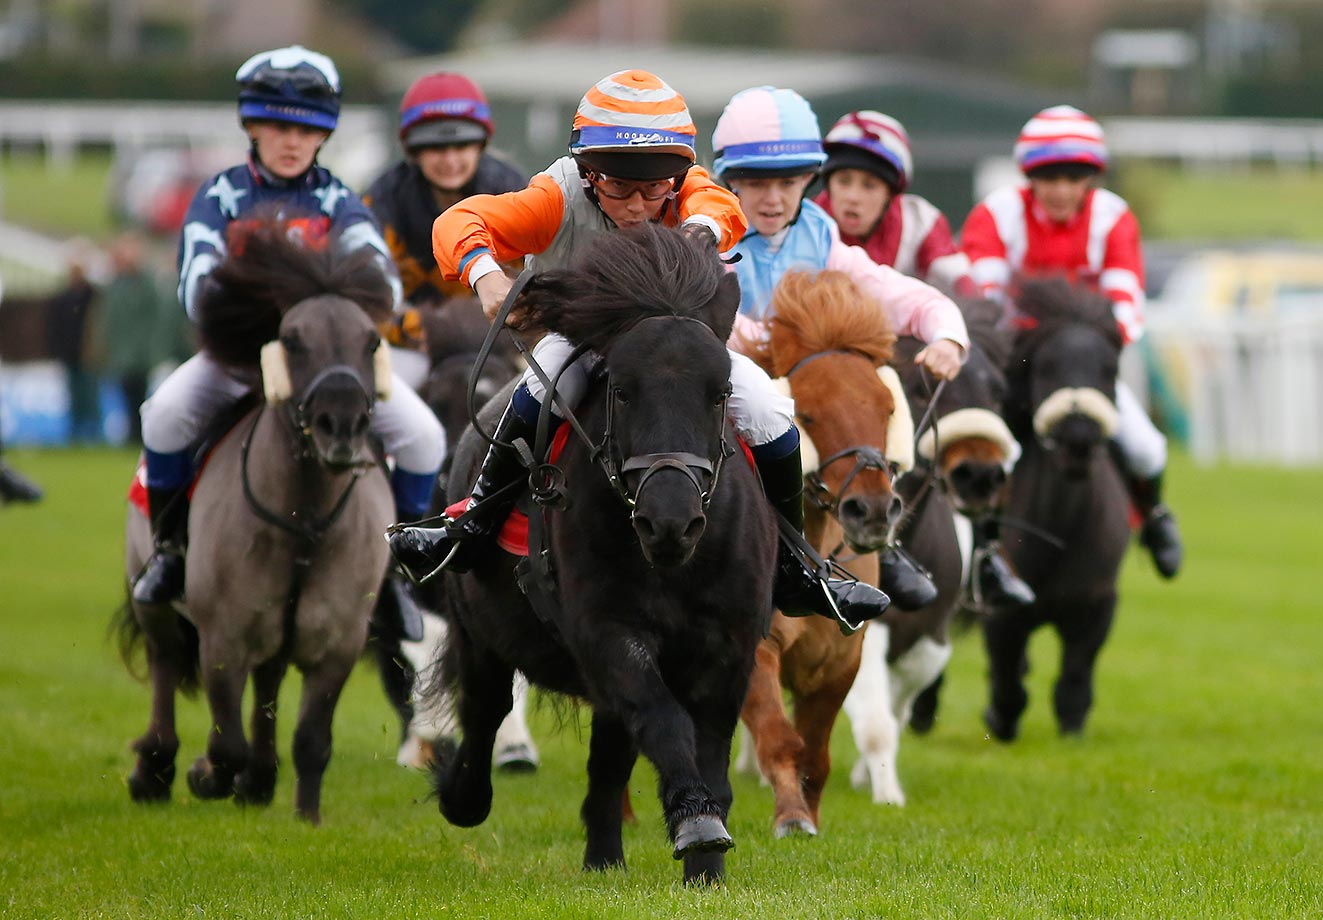 Bradley Kent, riding Bugsey (orange sleeves), wins The Moorcroft Racehorse Welfare Centre Shetland Pony Gold Cup in England.